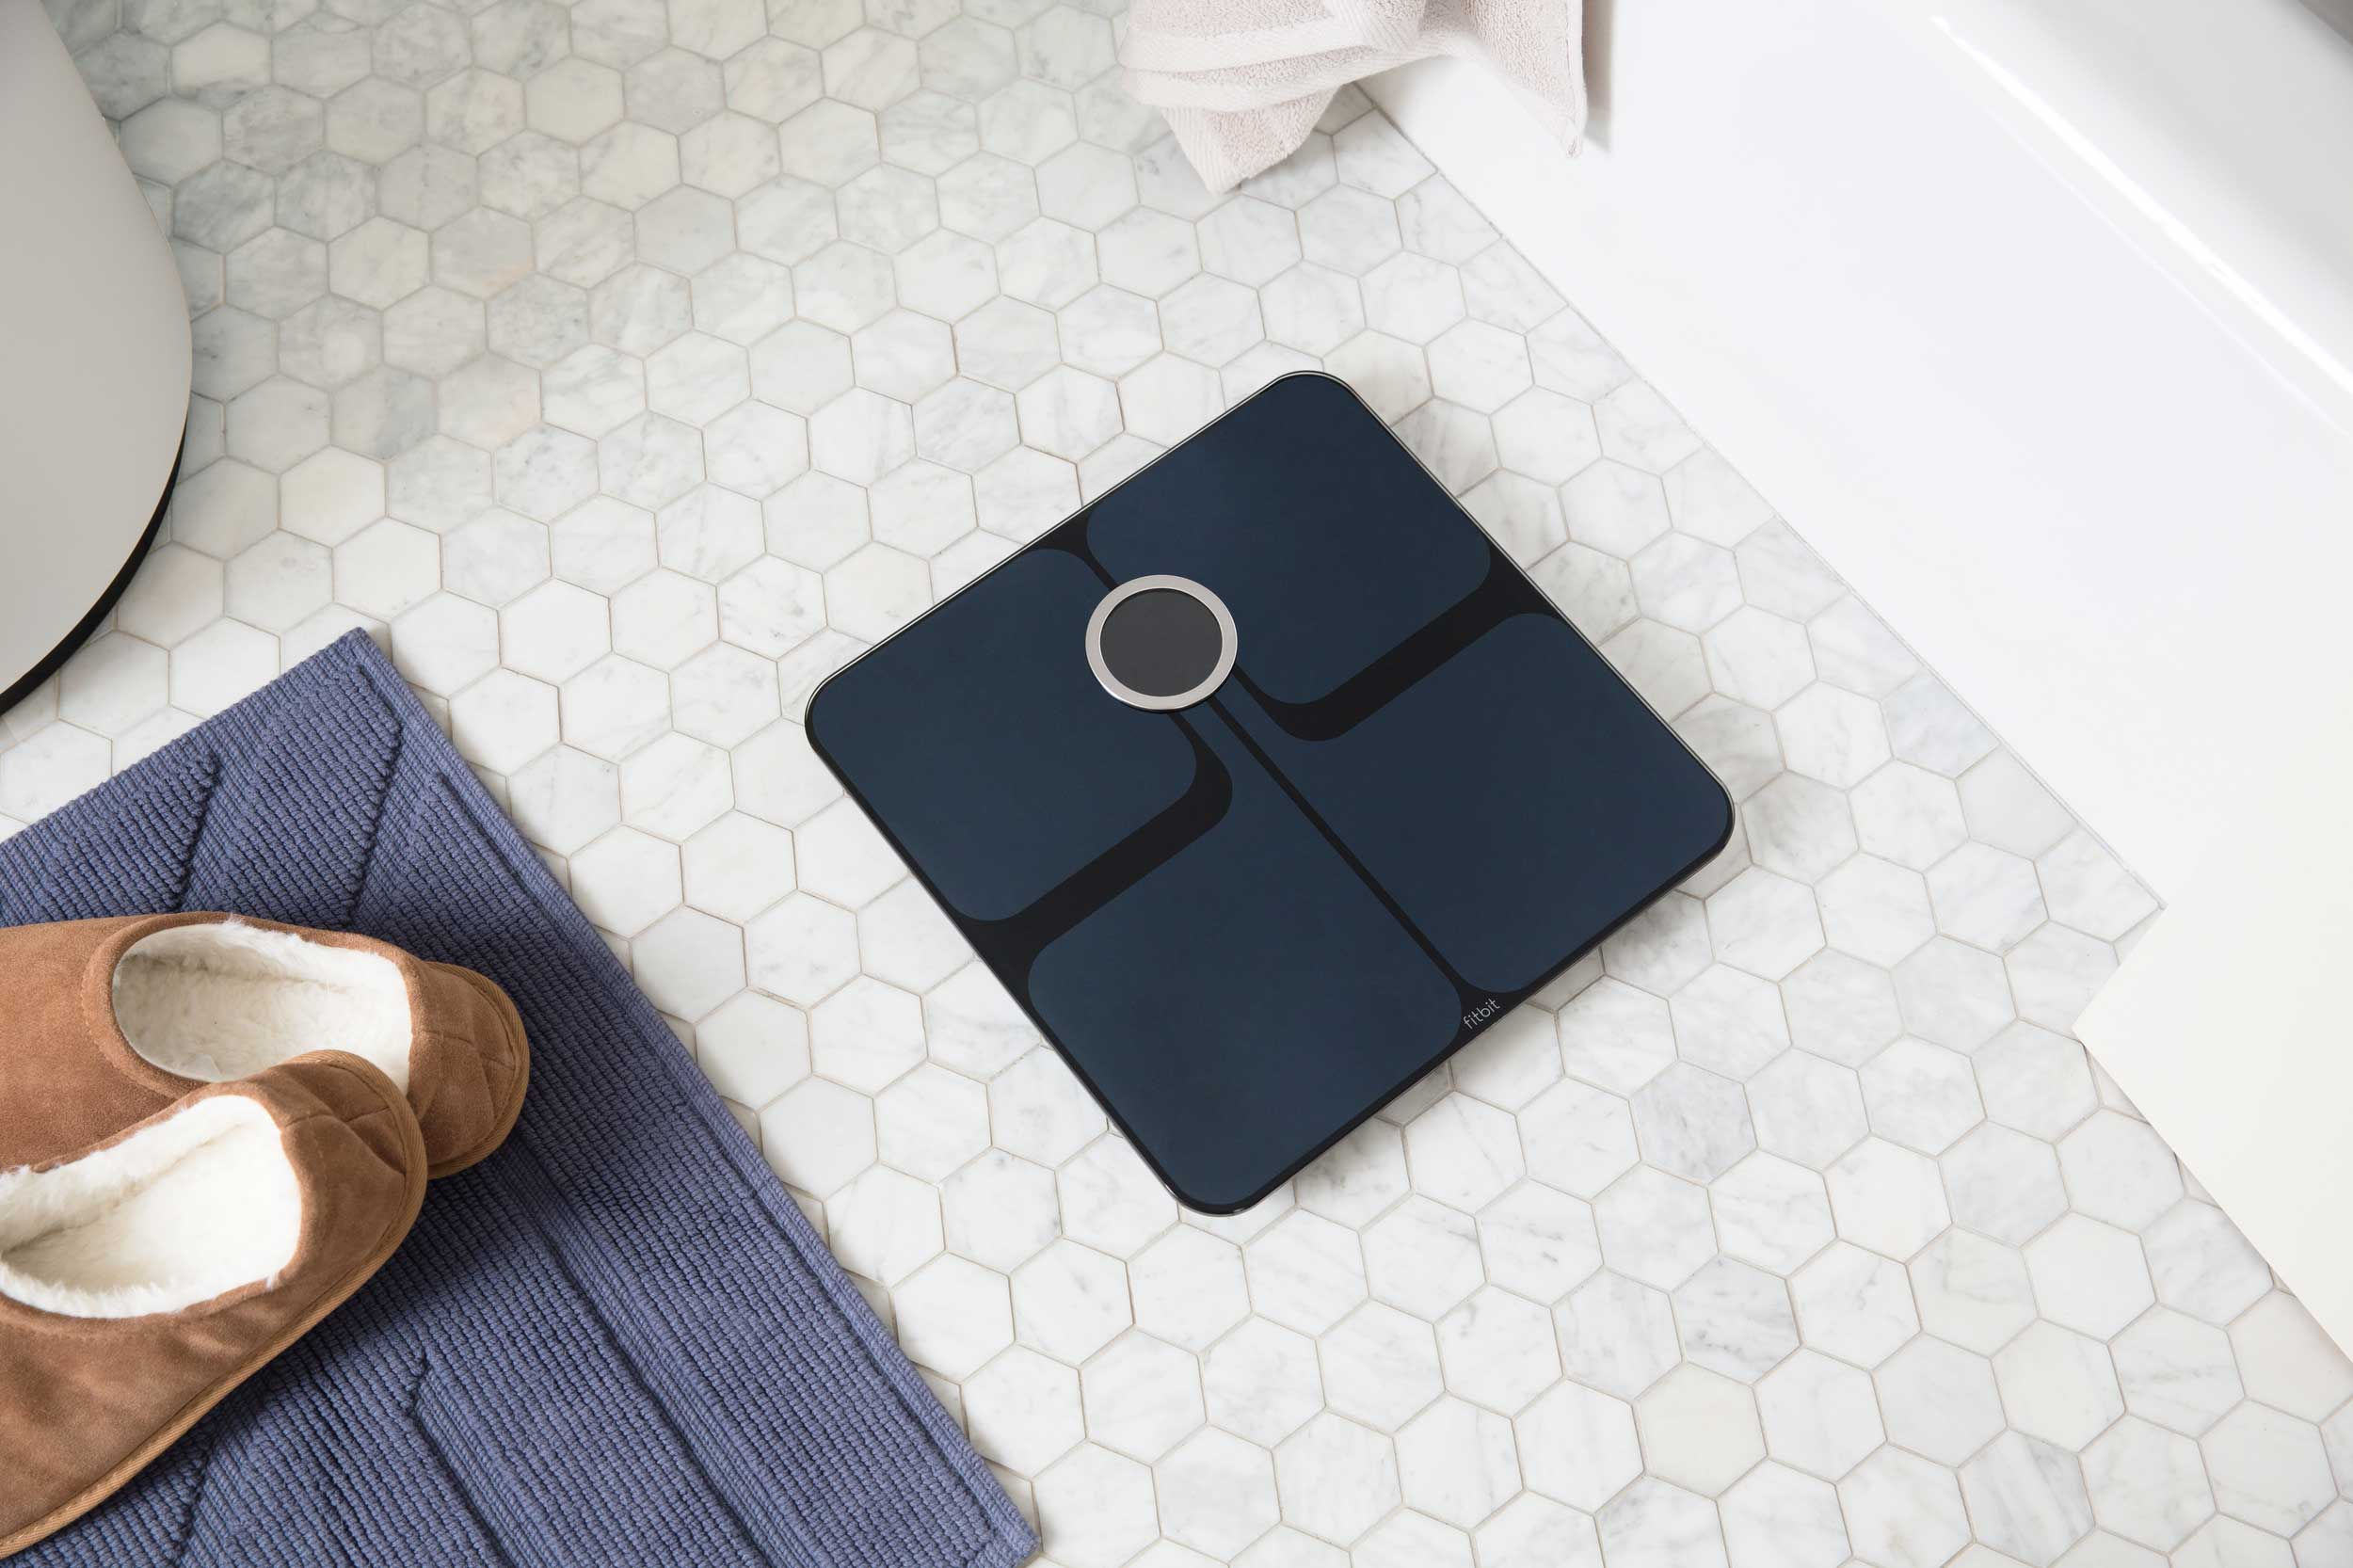 Lifestyle photo of a dark coloured fitbit smart scale on the bathroom floor